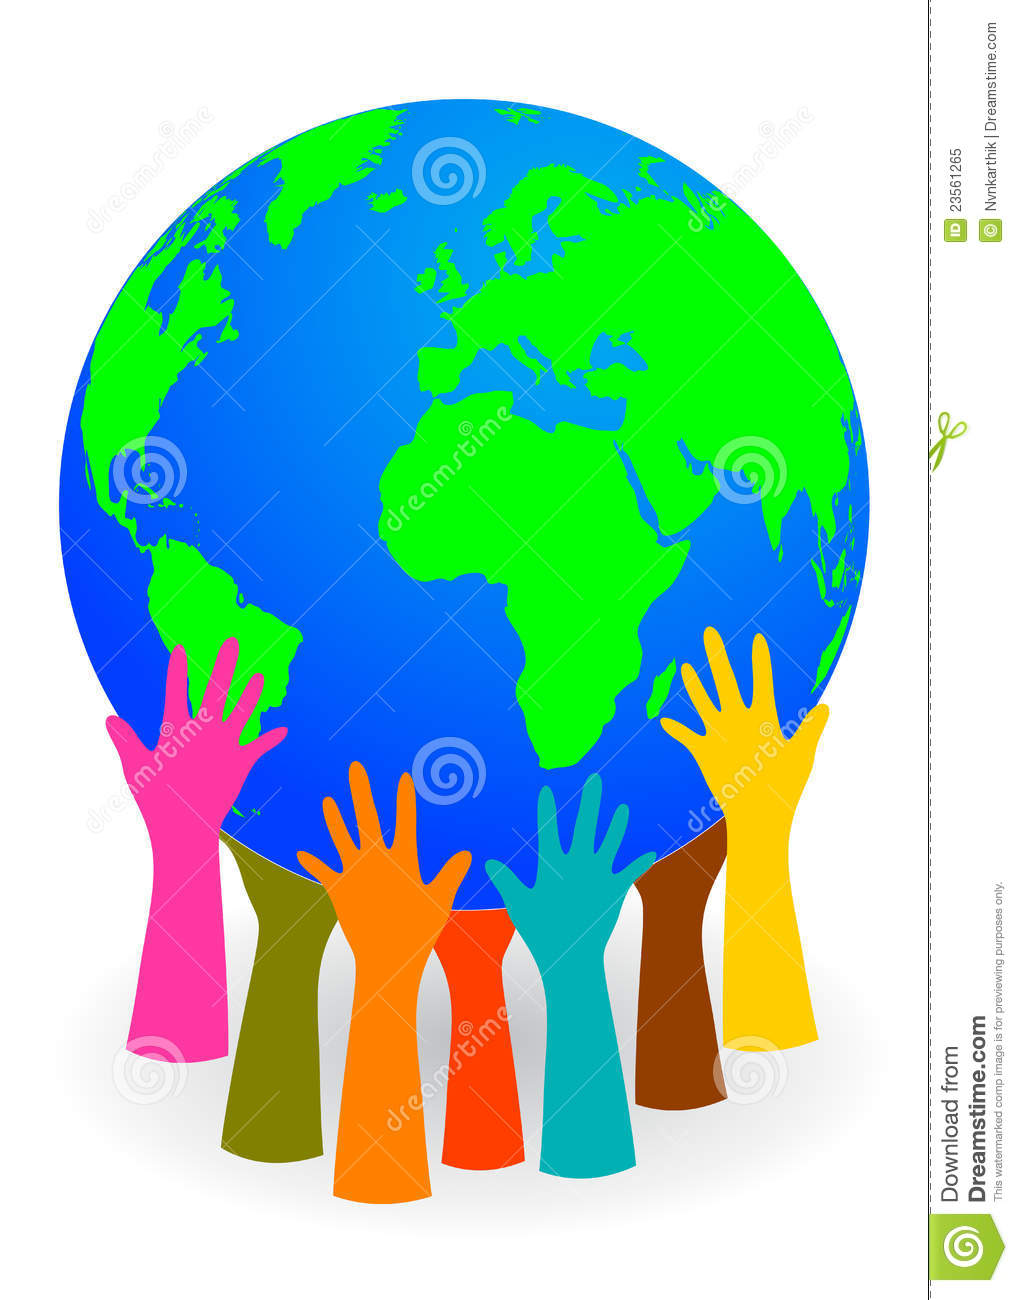 Hands Holding Up A Globe Royalty Free Stock Photo.